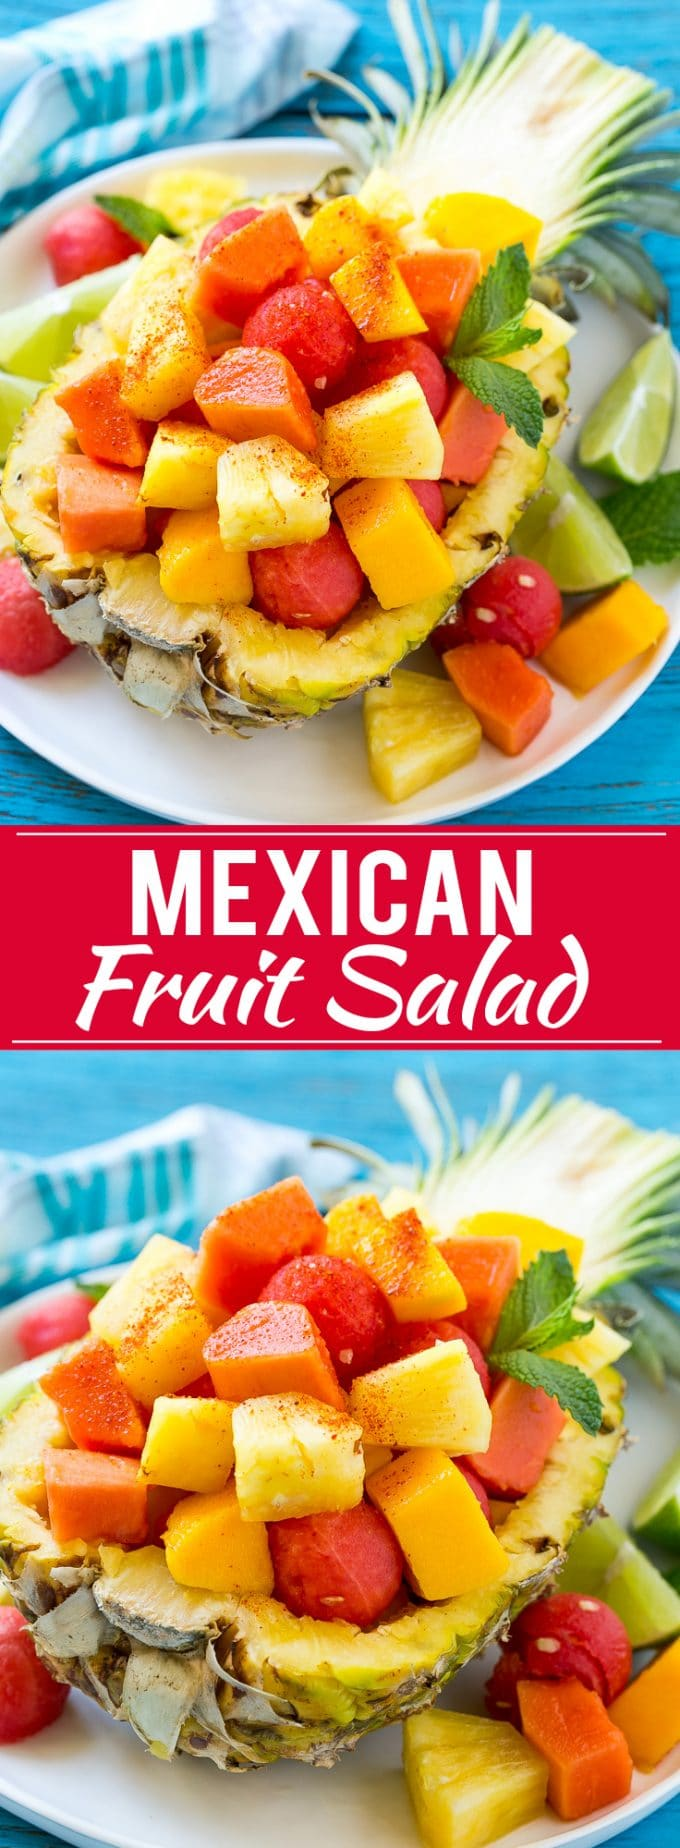 Mexican Fruit Salad Recipe | Fruit Salad | Healthy Fruit Recipe #salad #fruit #fruitsalad #watermelon #pineapple #summer #dinneratthezoo